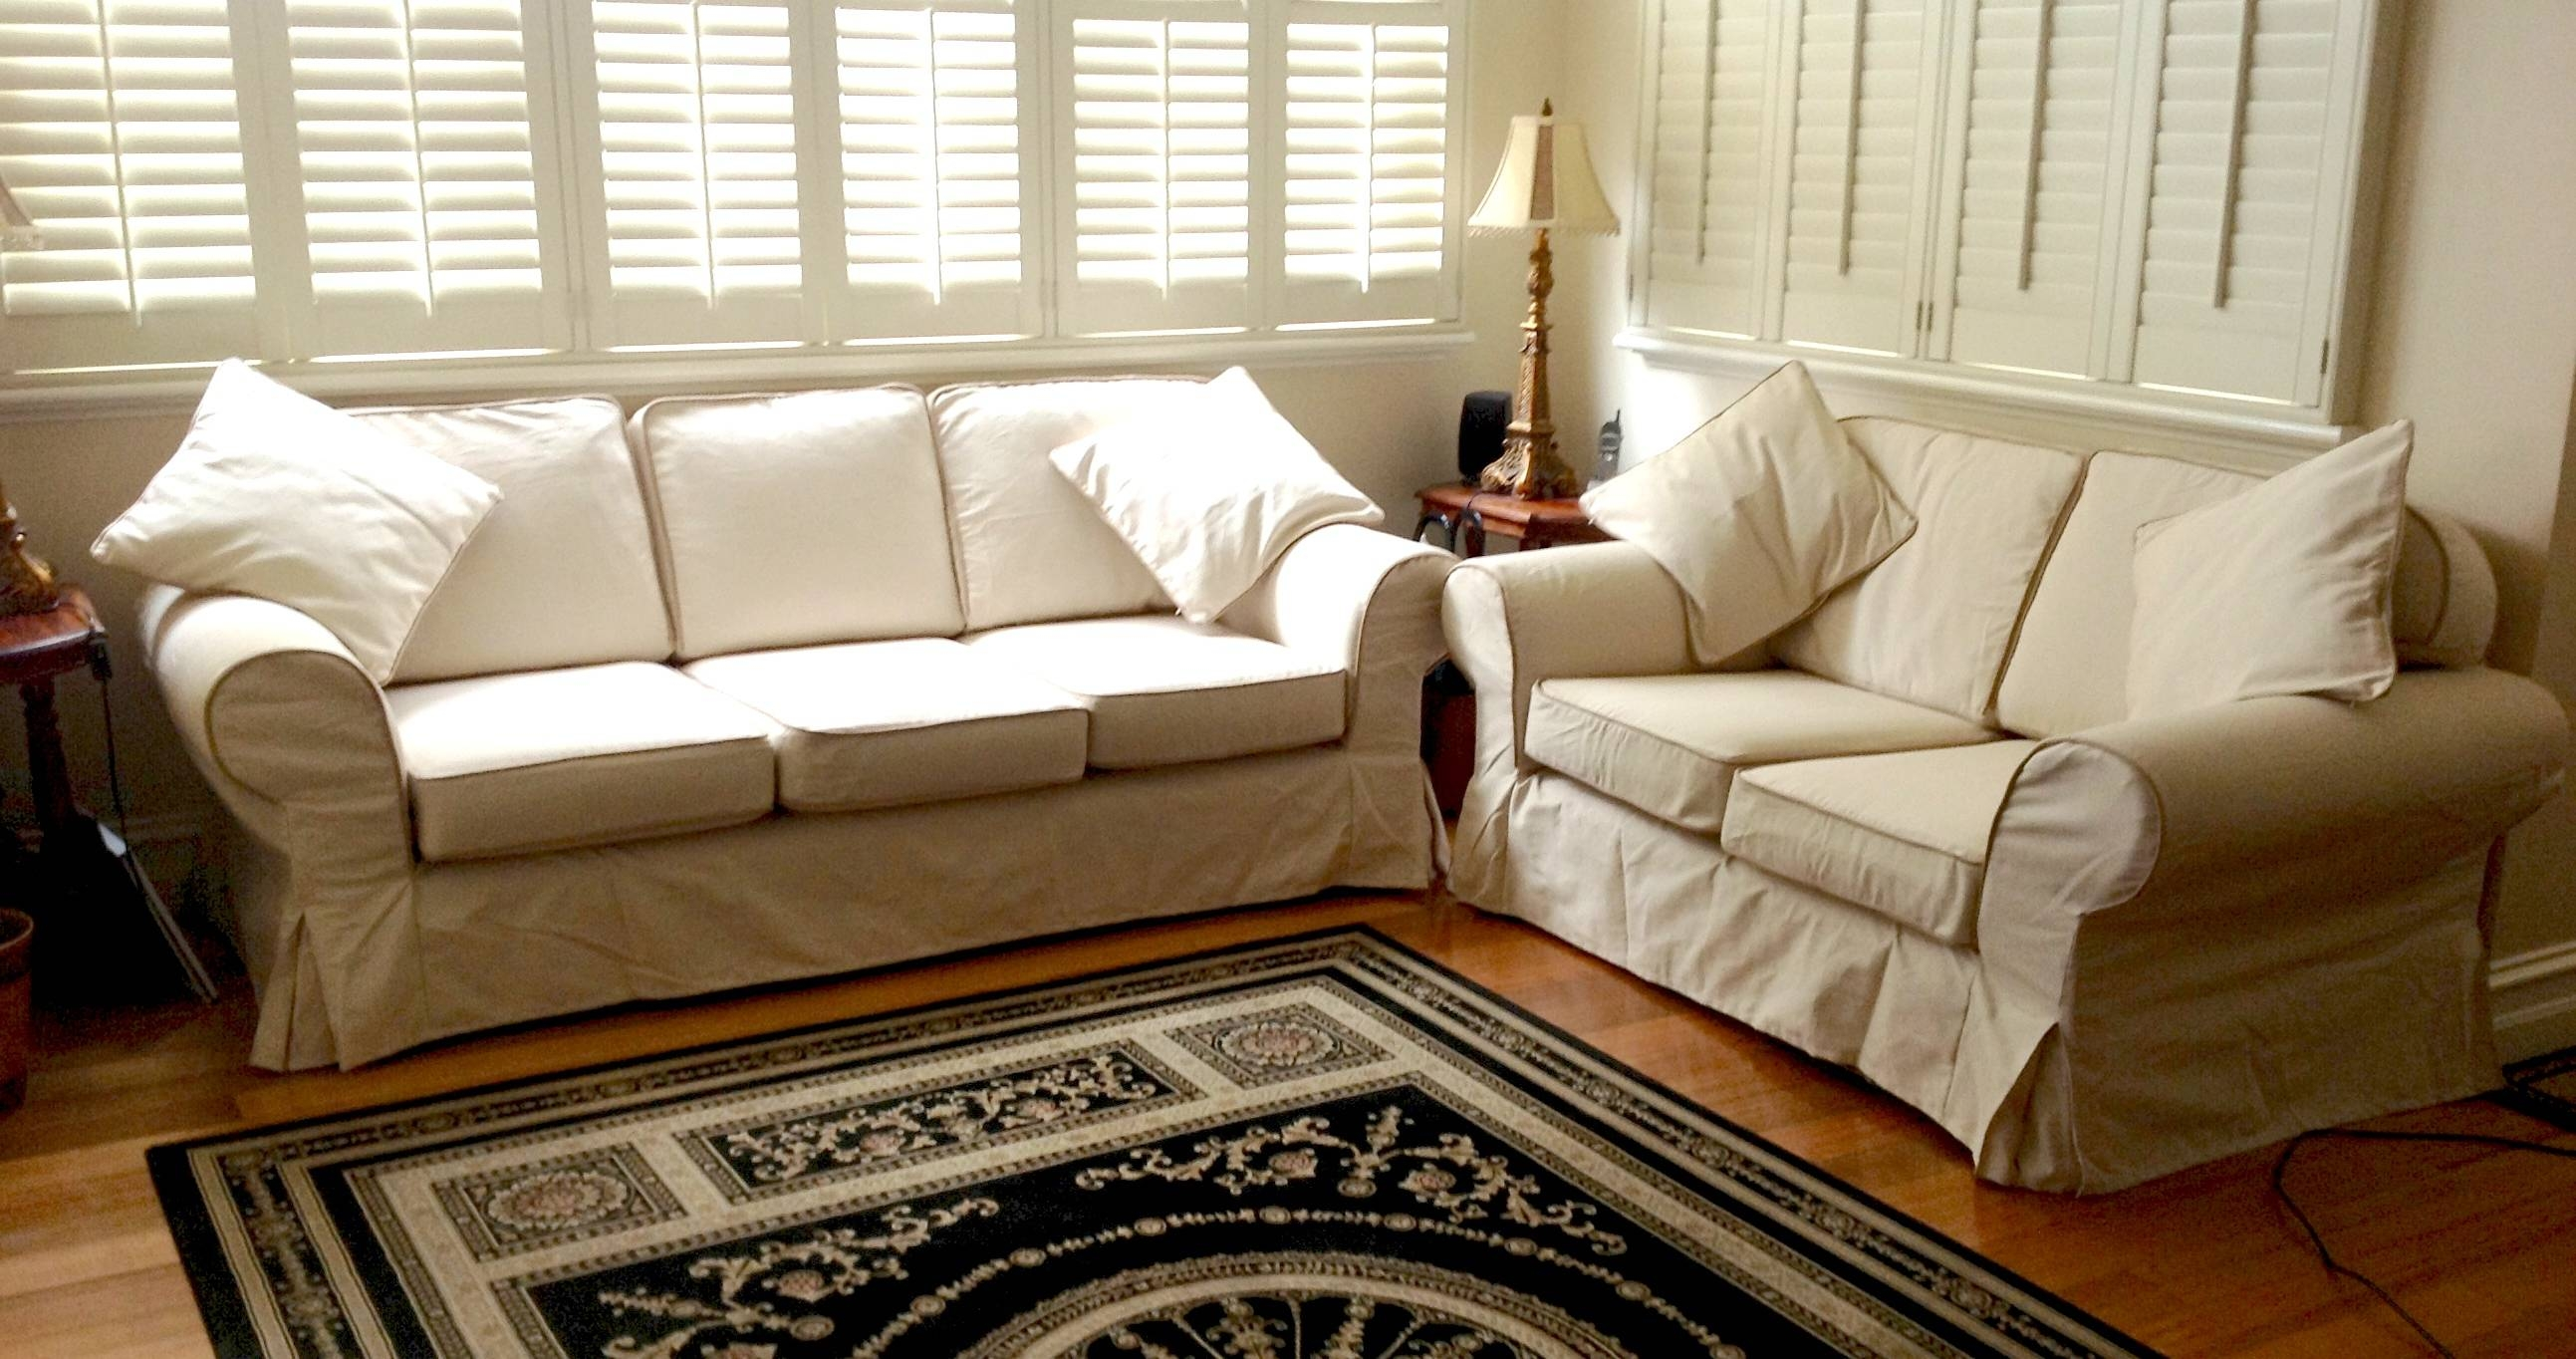 Decorating: Elegant Black Slipcovers For Sofas With Cushions with regard to Black Slipcovers For Sofas (Image 7 of 30)